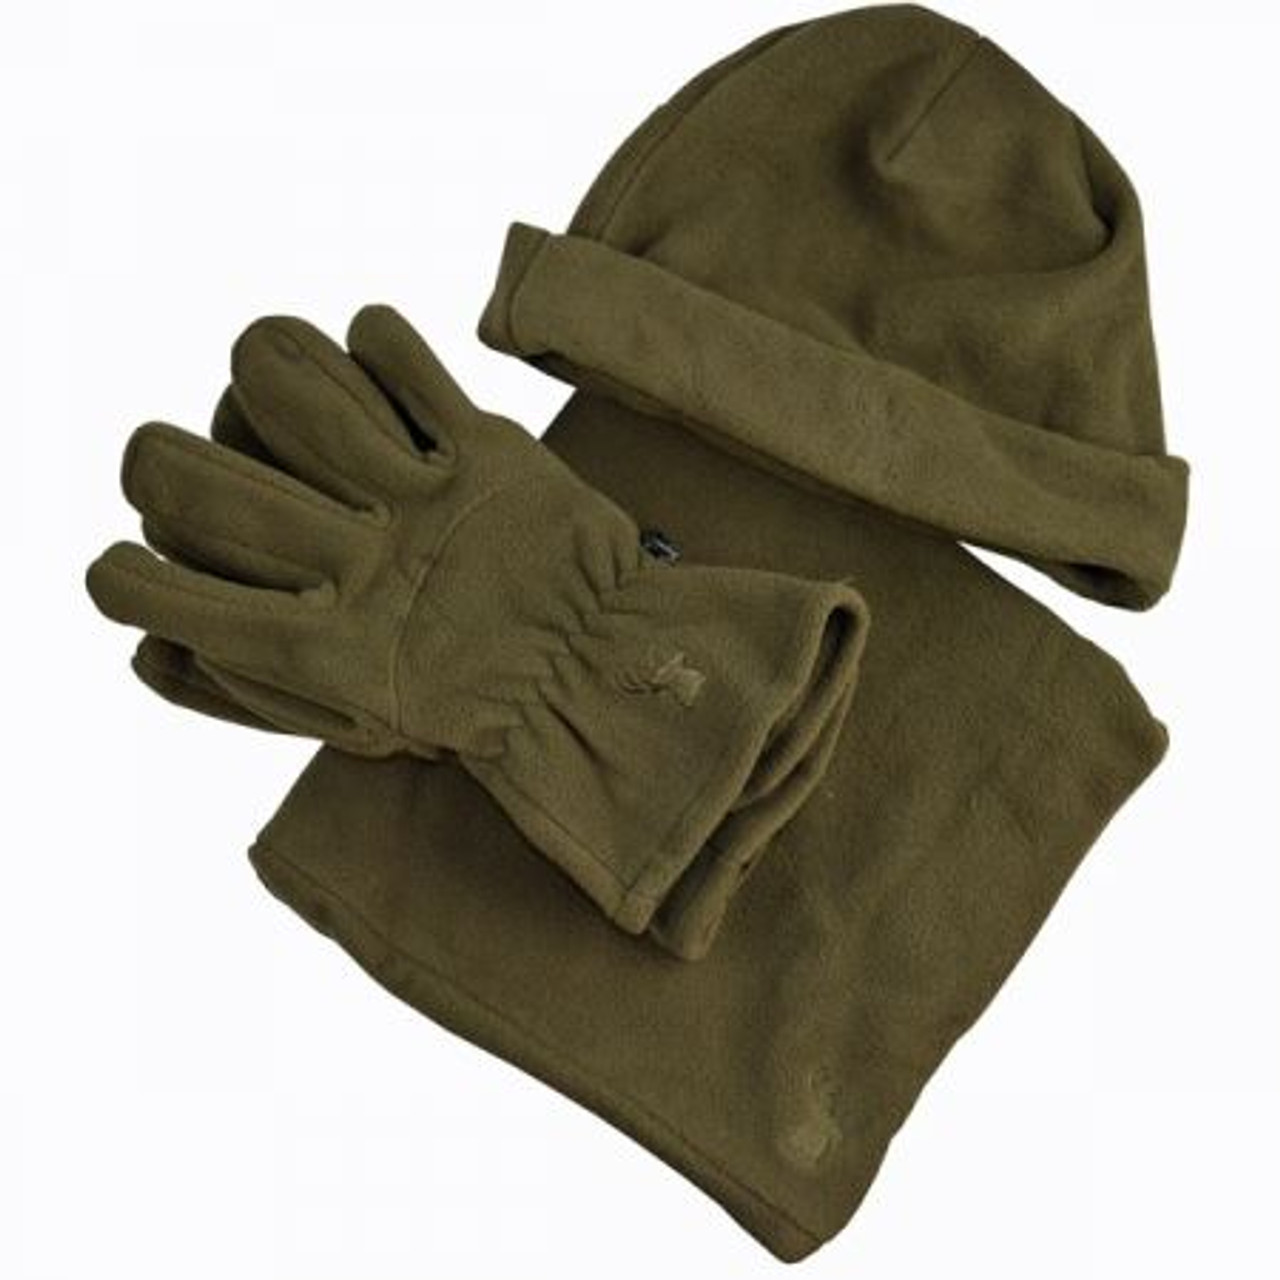 Hart Compton Hat, Glove and Snood Set